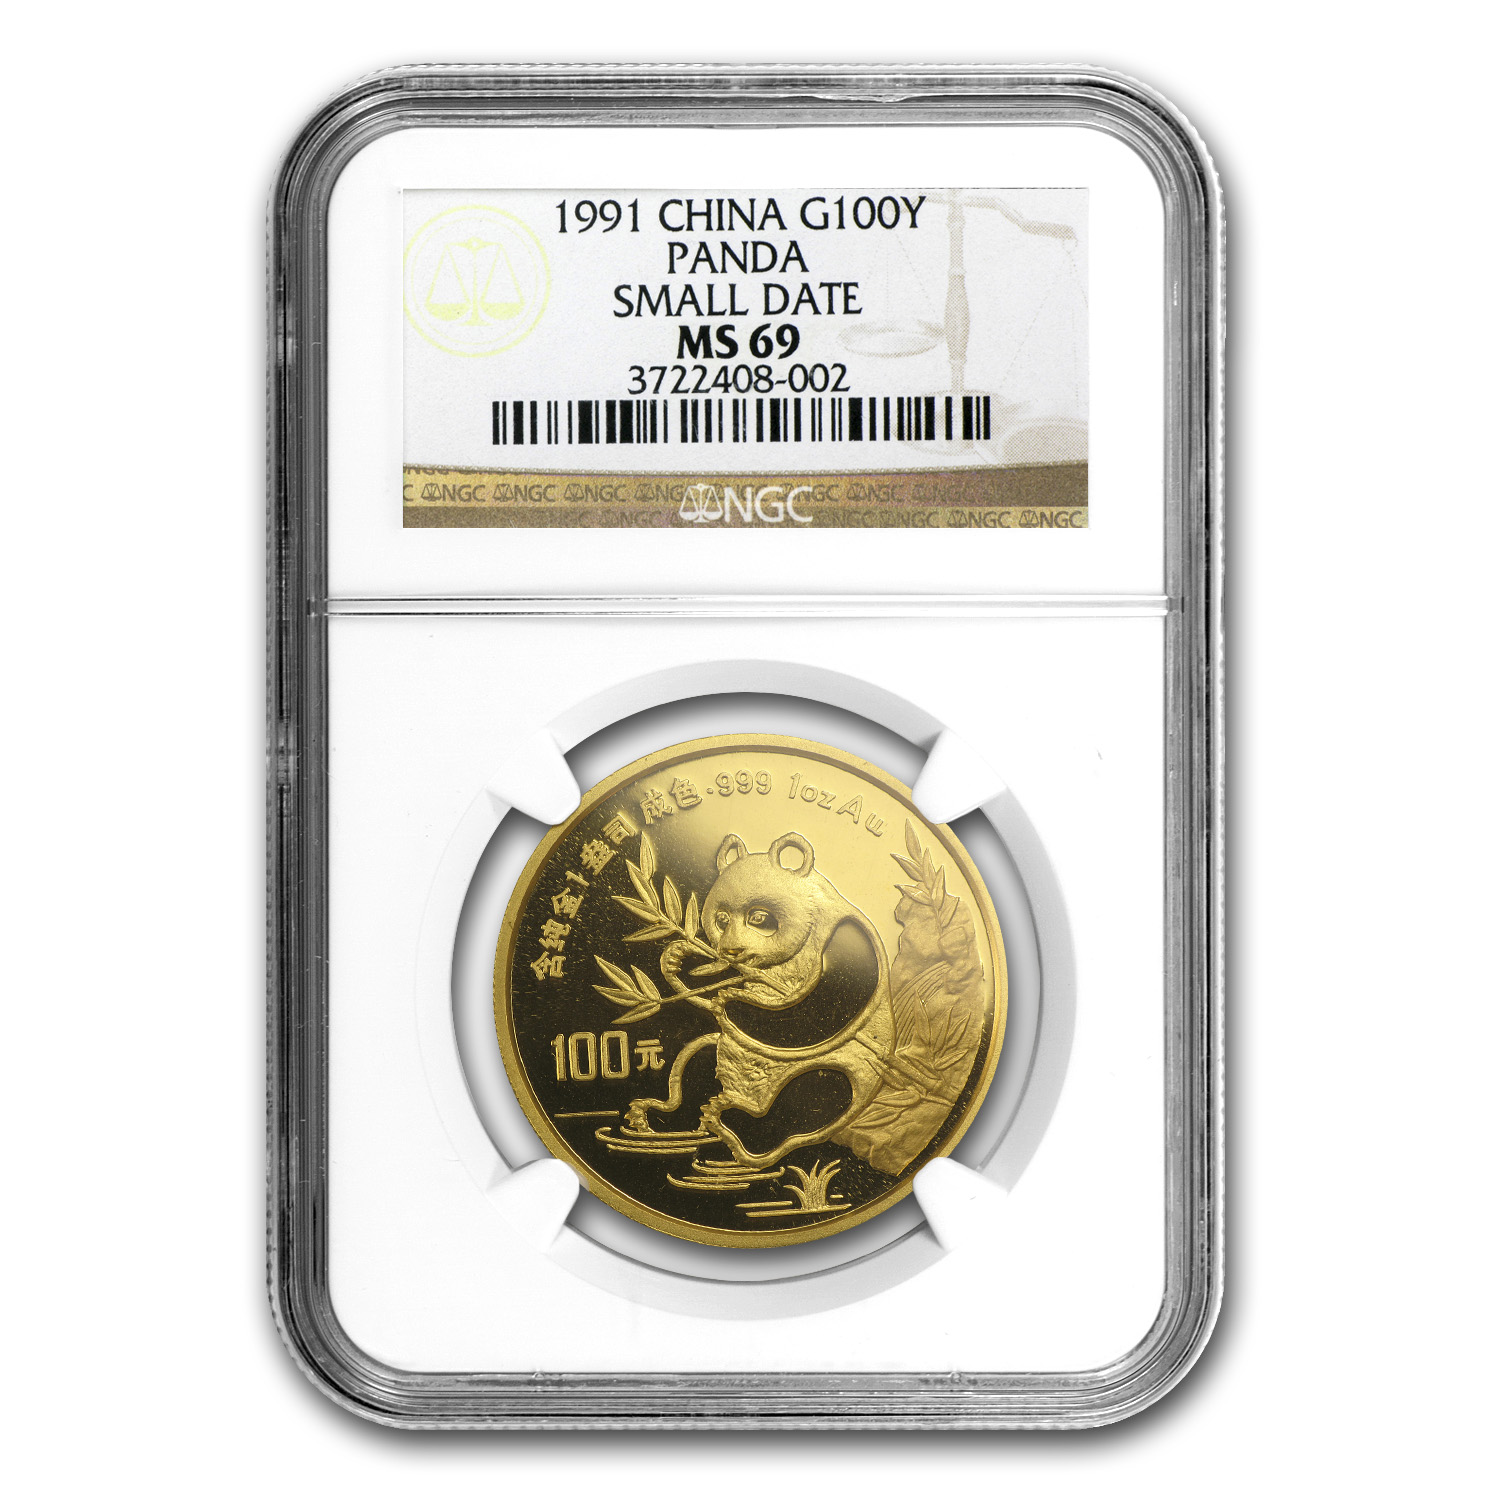 1991 China 1 oz Gold Panda Small Date MS-69 NGC